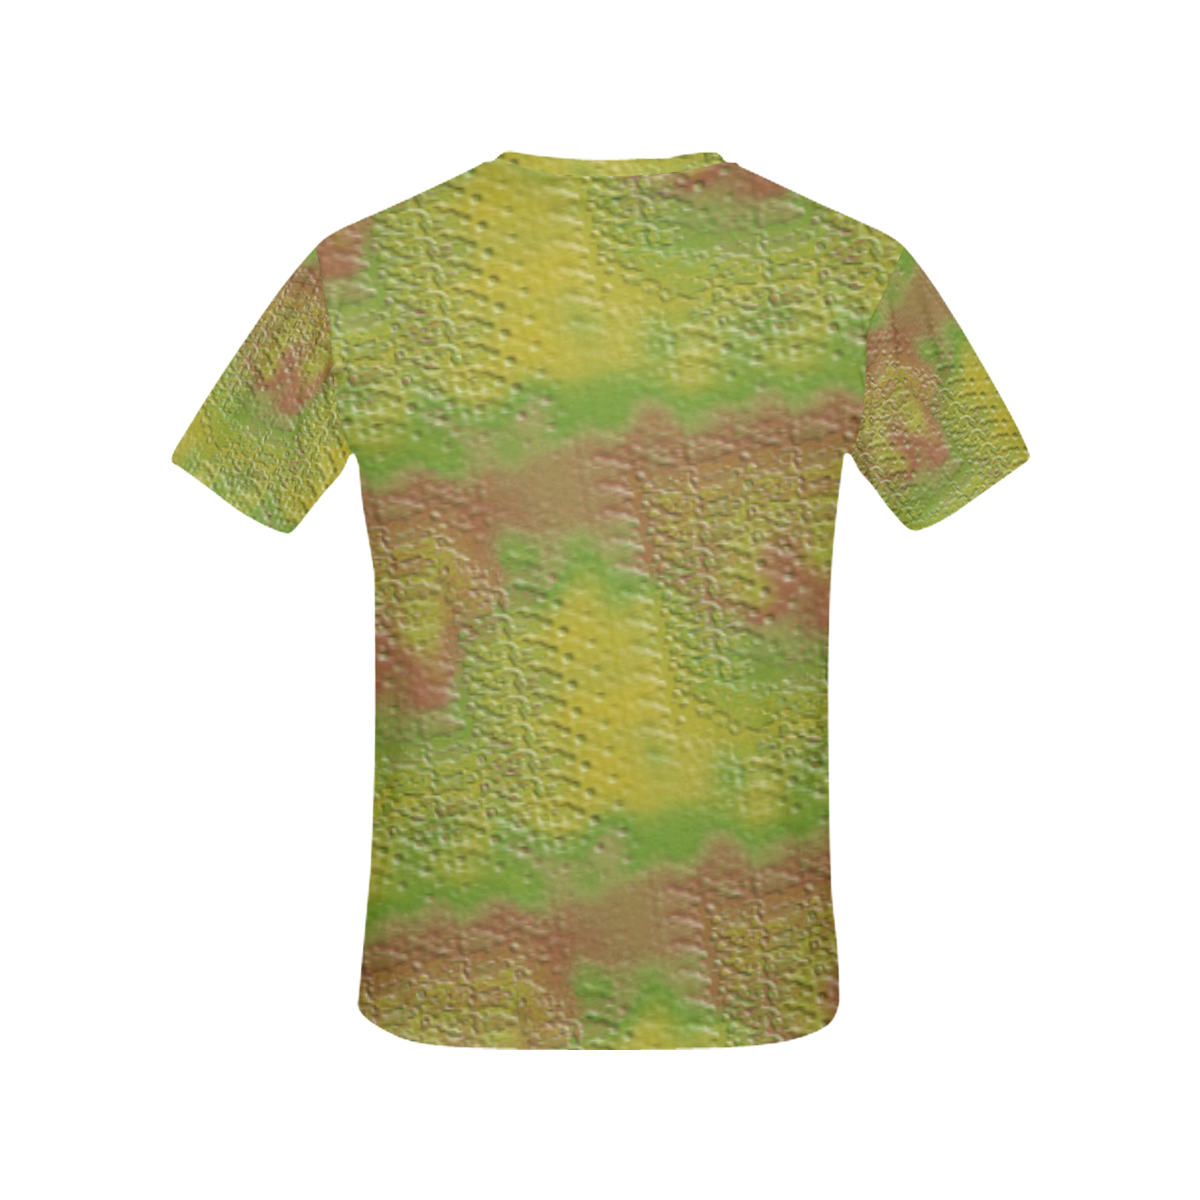 Swamp Green Textured Stone All Over Print T-Shirt for Women (USA Size) (Model T40)